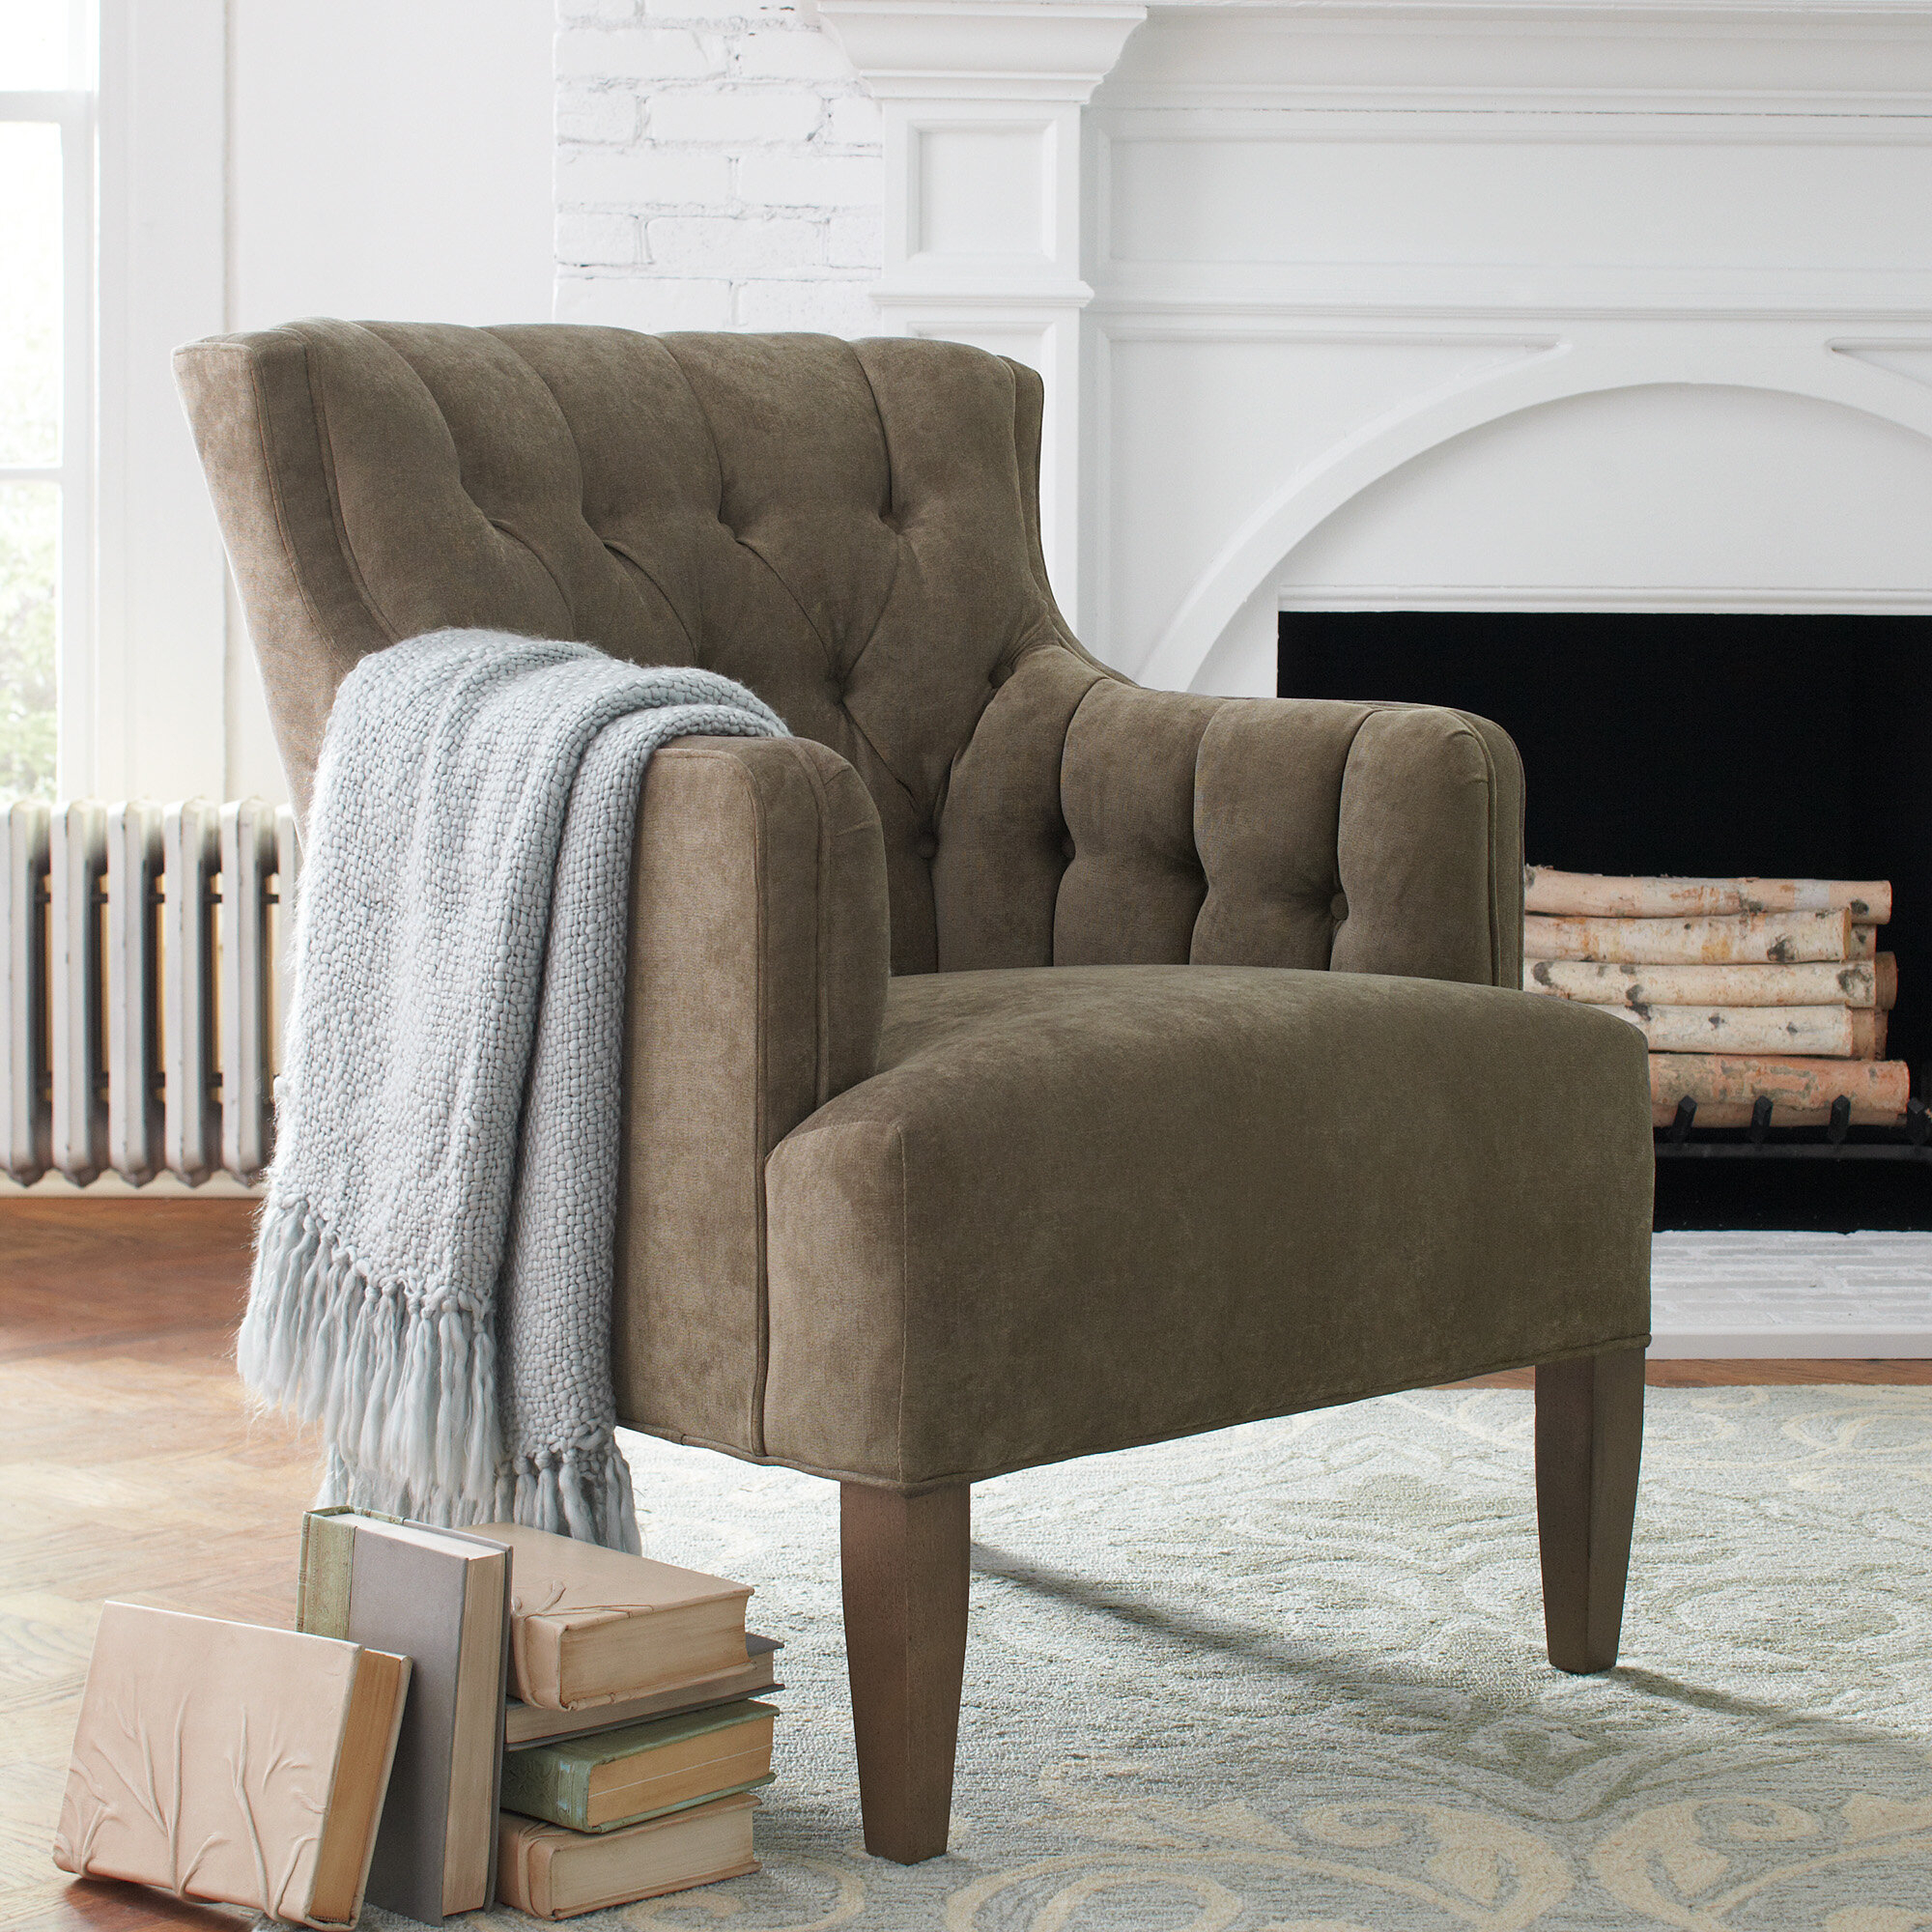 Farmhouse & Rustic Tufted Accent Chairs | Birch Lane With Regard To Cohutta Armchairs (View 10 of 15)